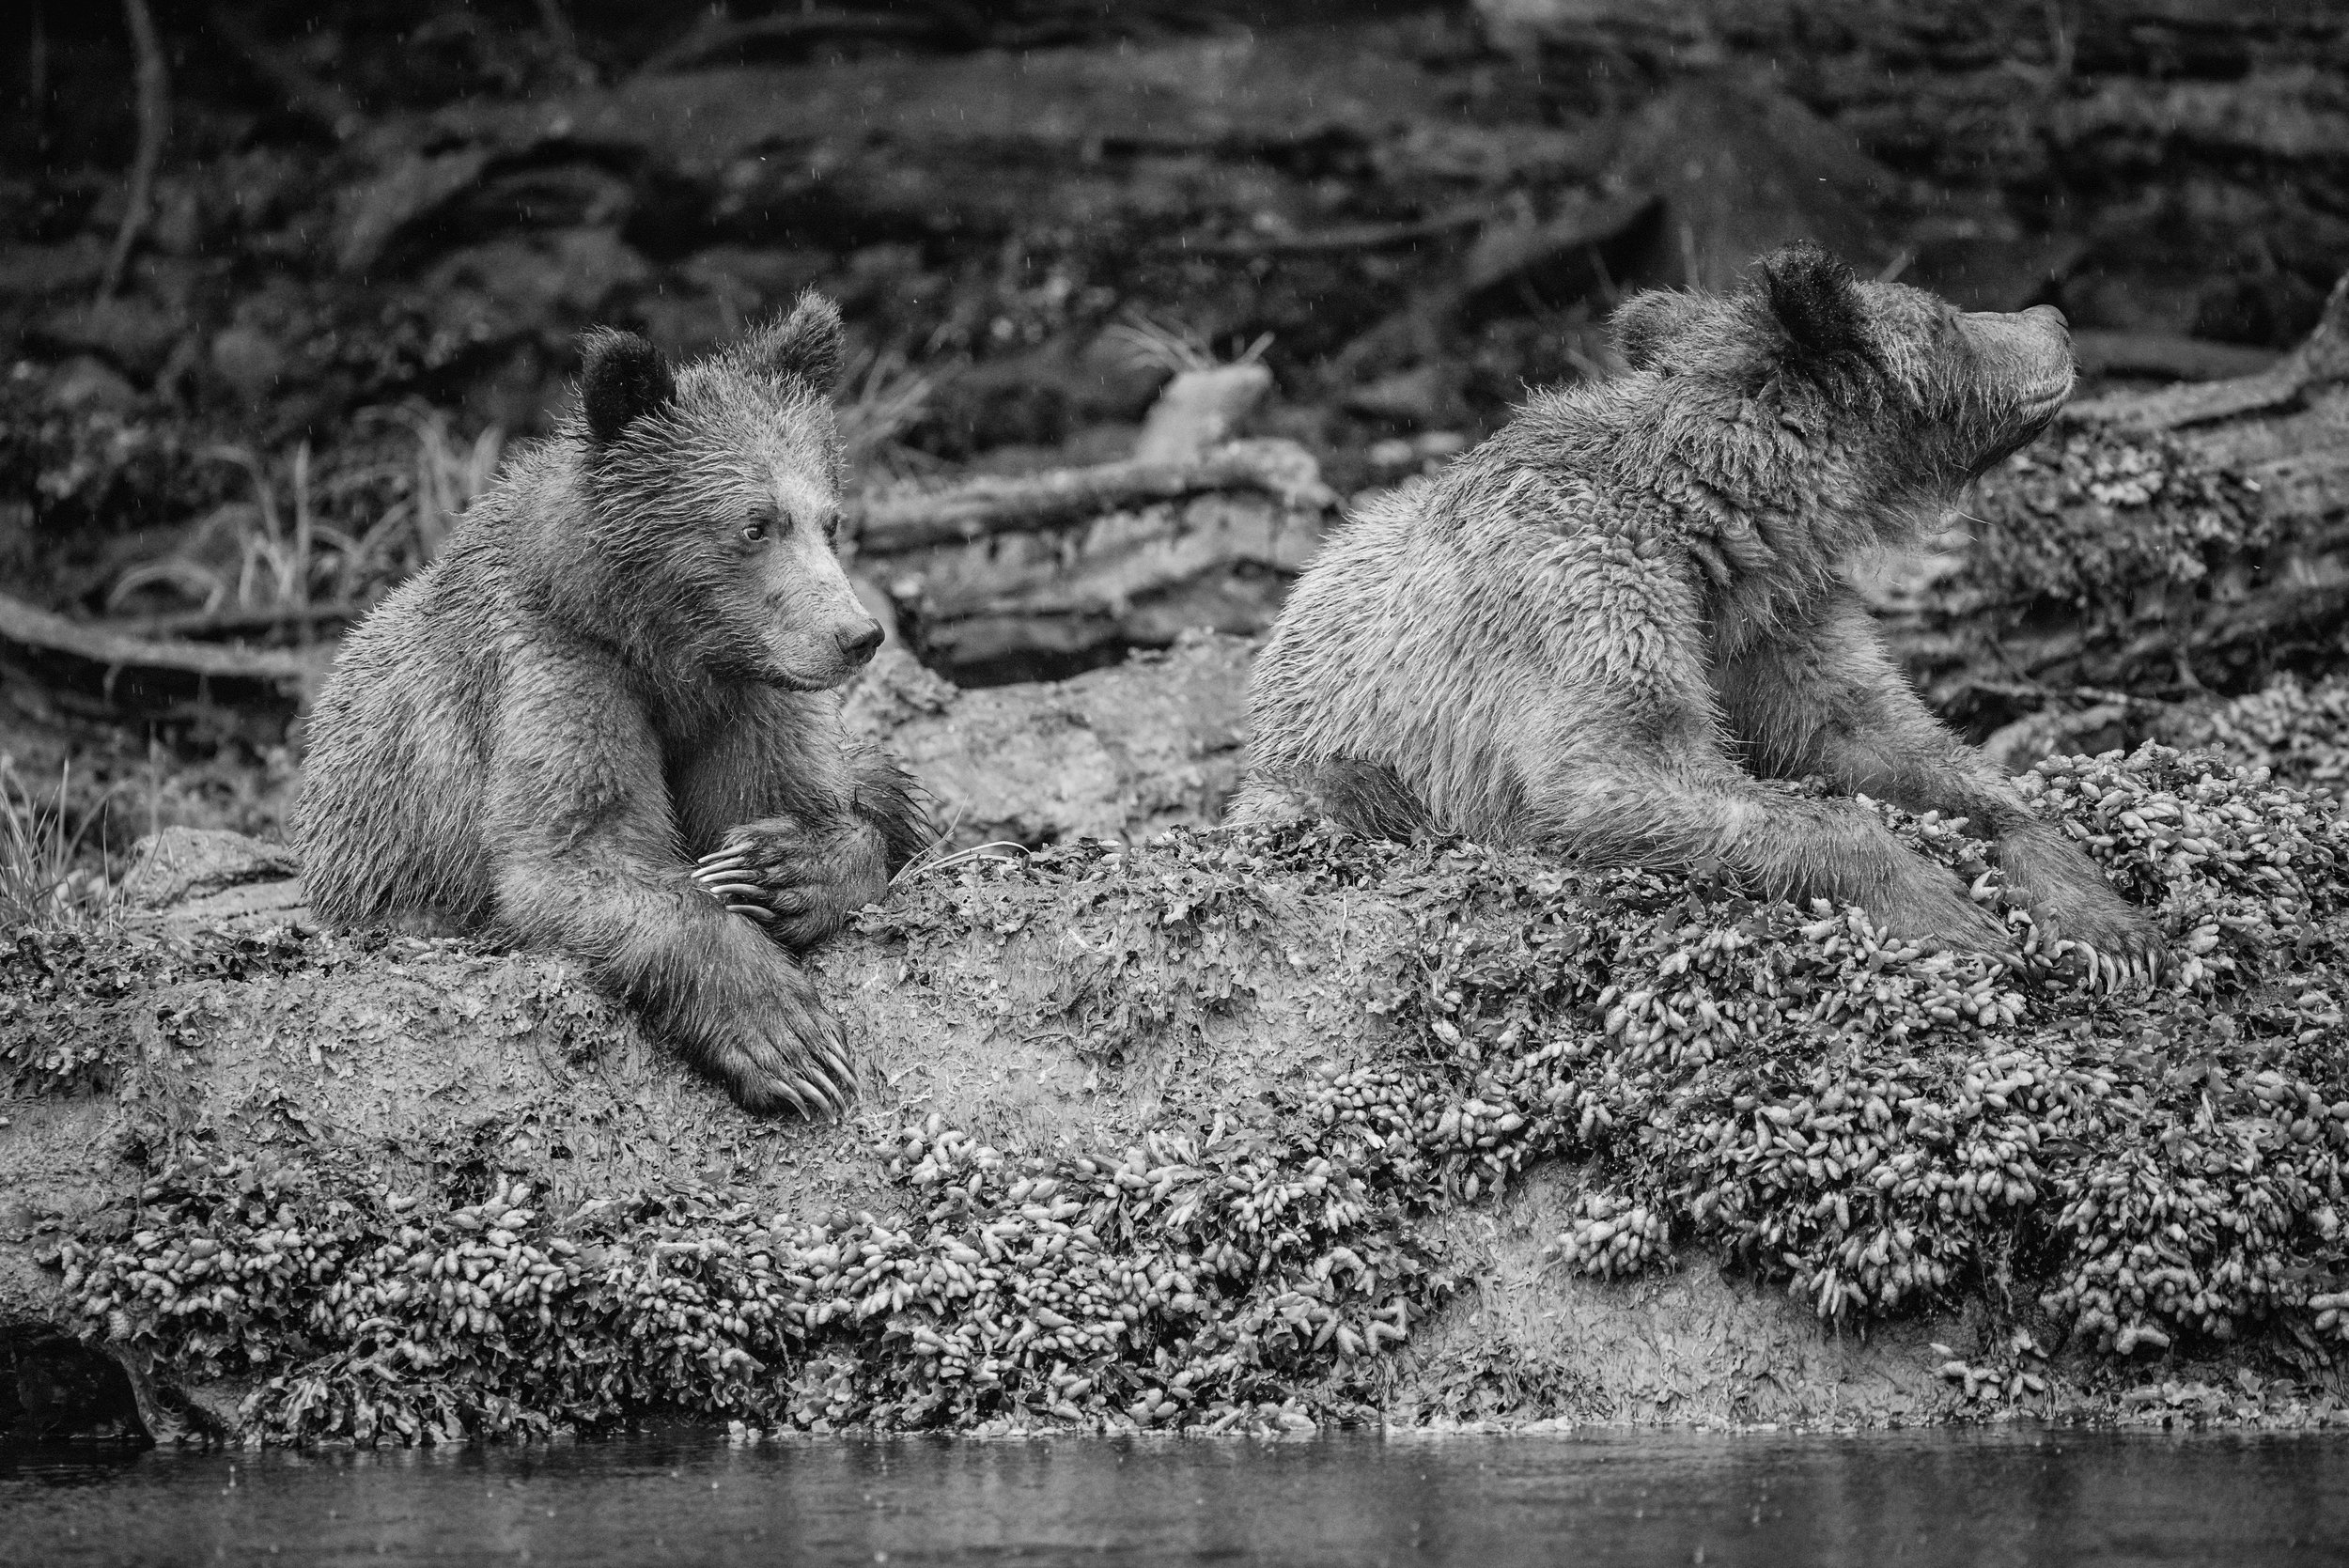 Grizzly cubs, Khutzeymateen Inlet, British Columbia